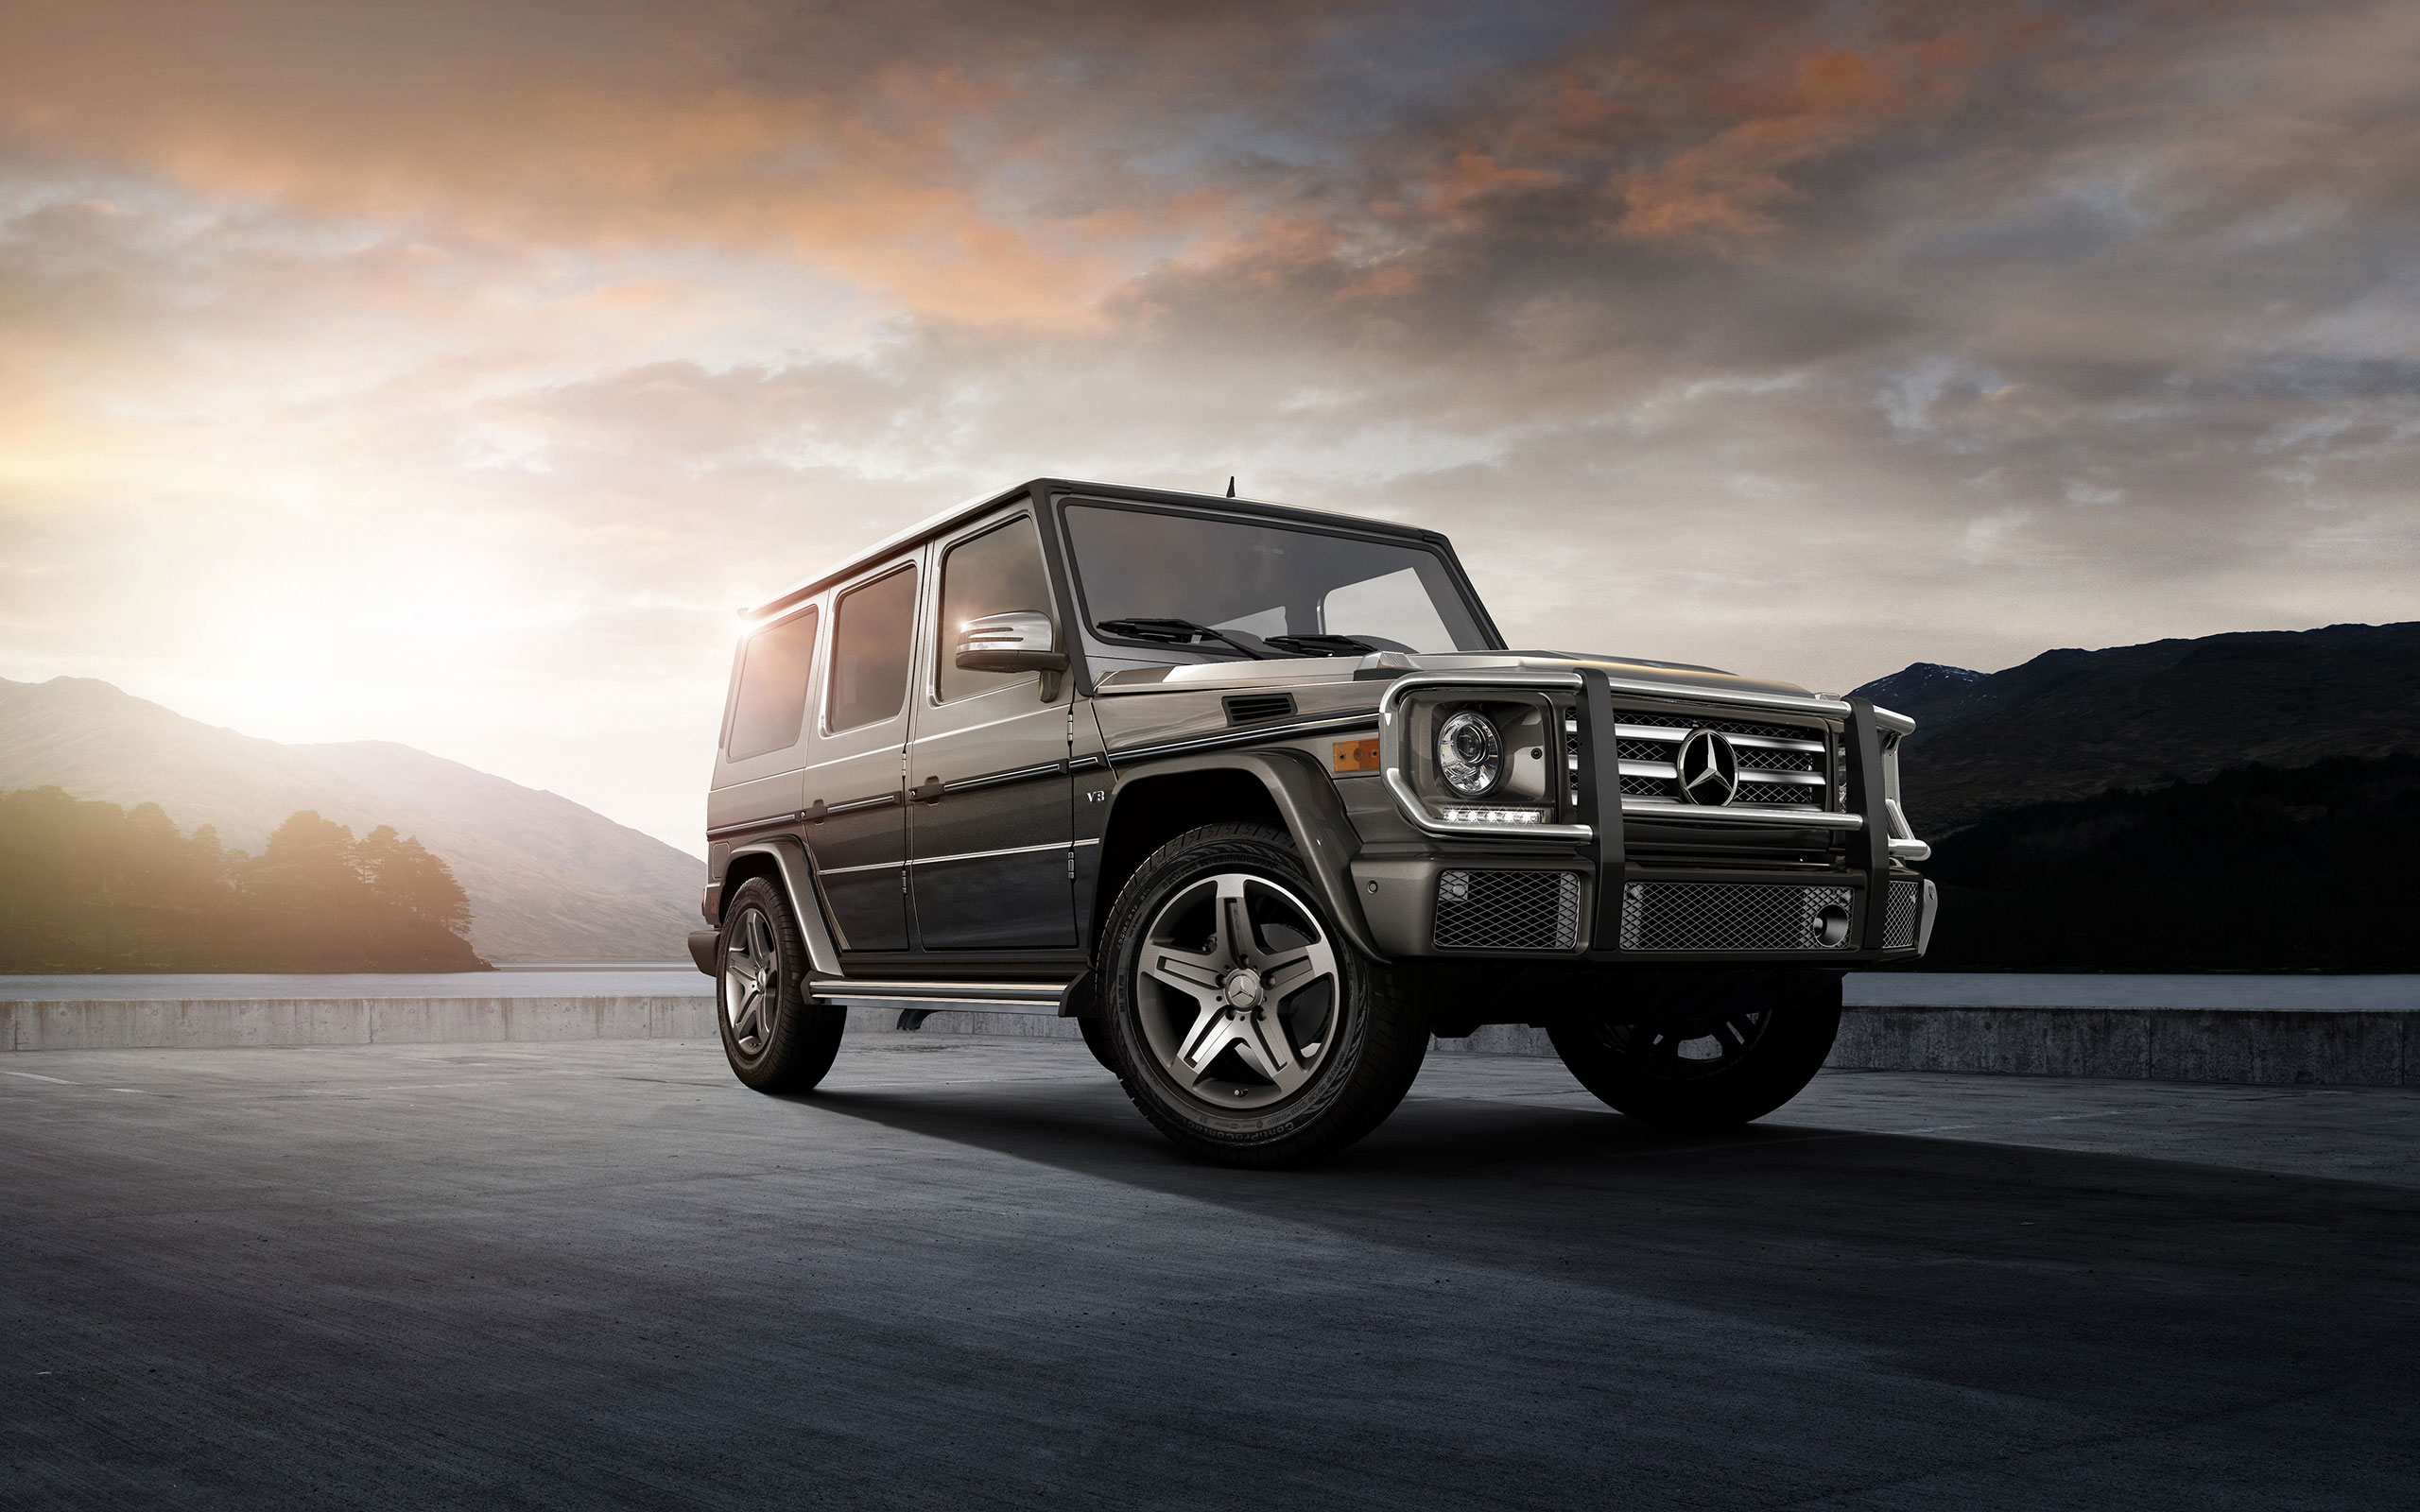 2017 Mercedes G Class Suv, HD Cars, 4k Wallpapers, Images